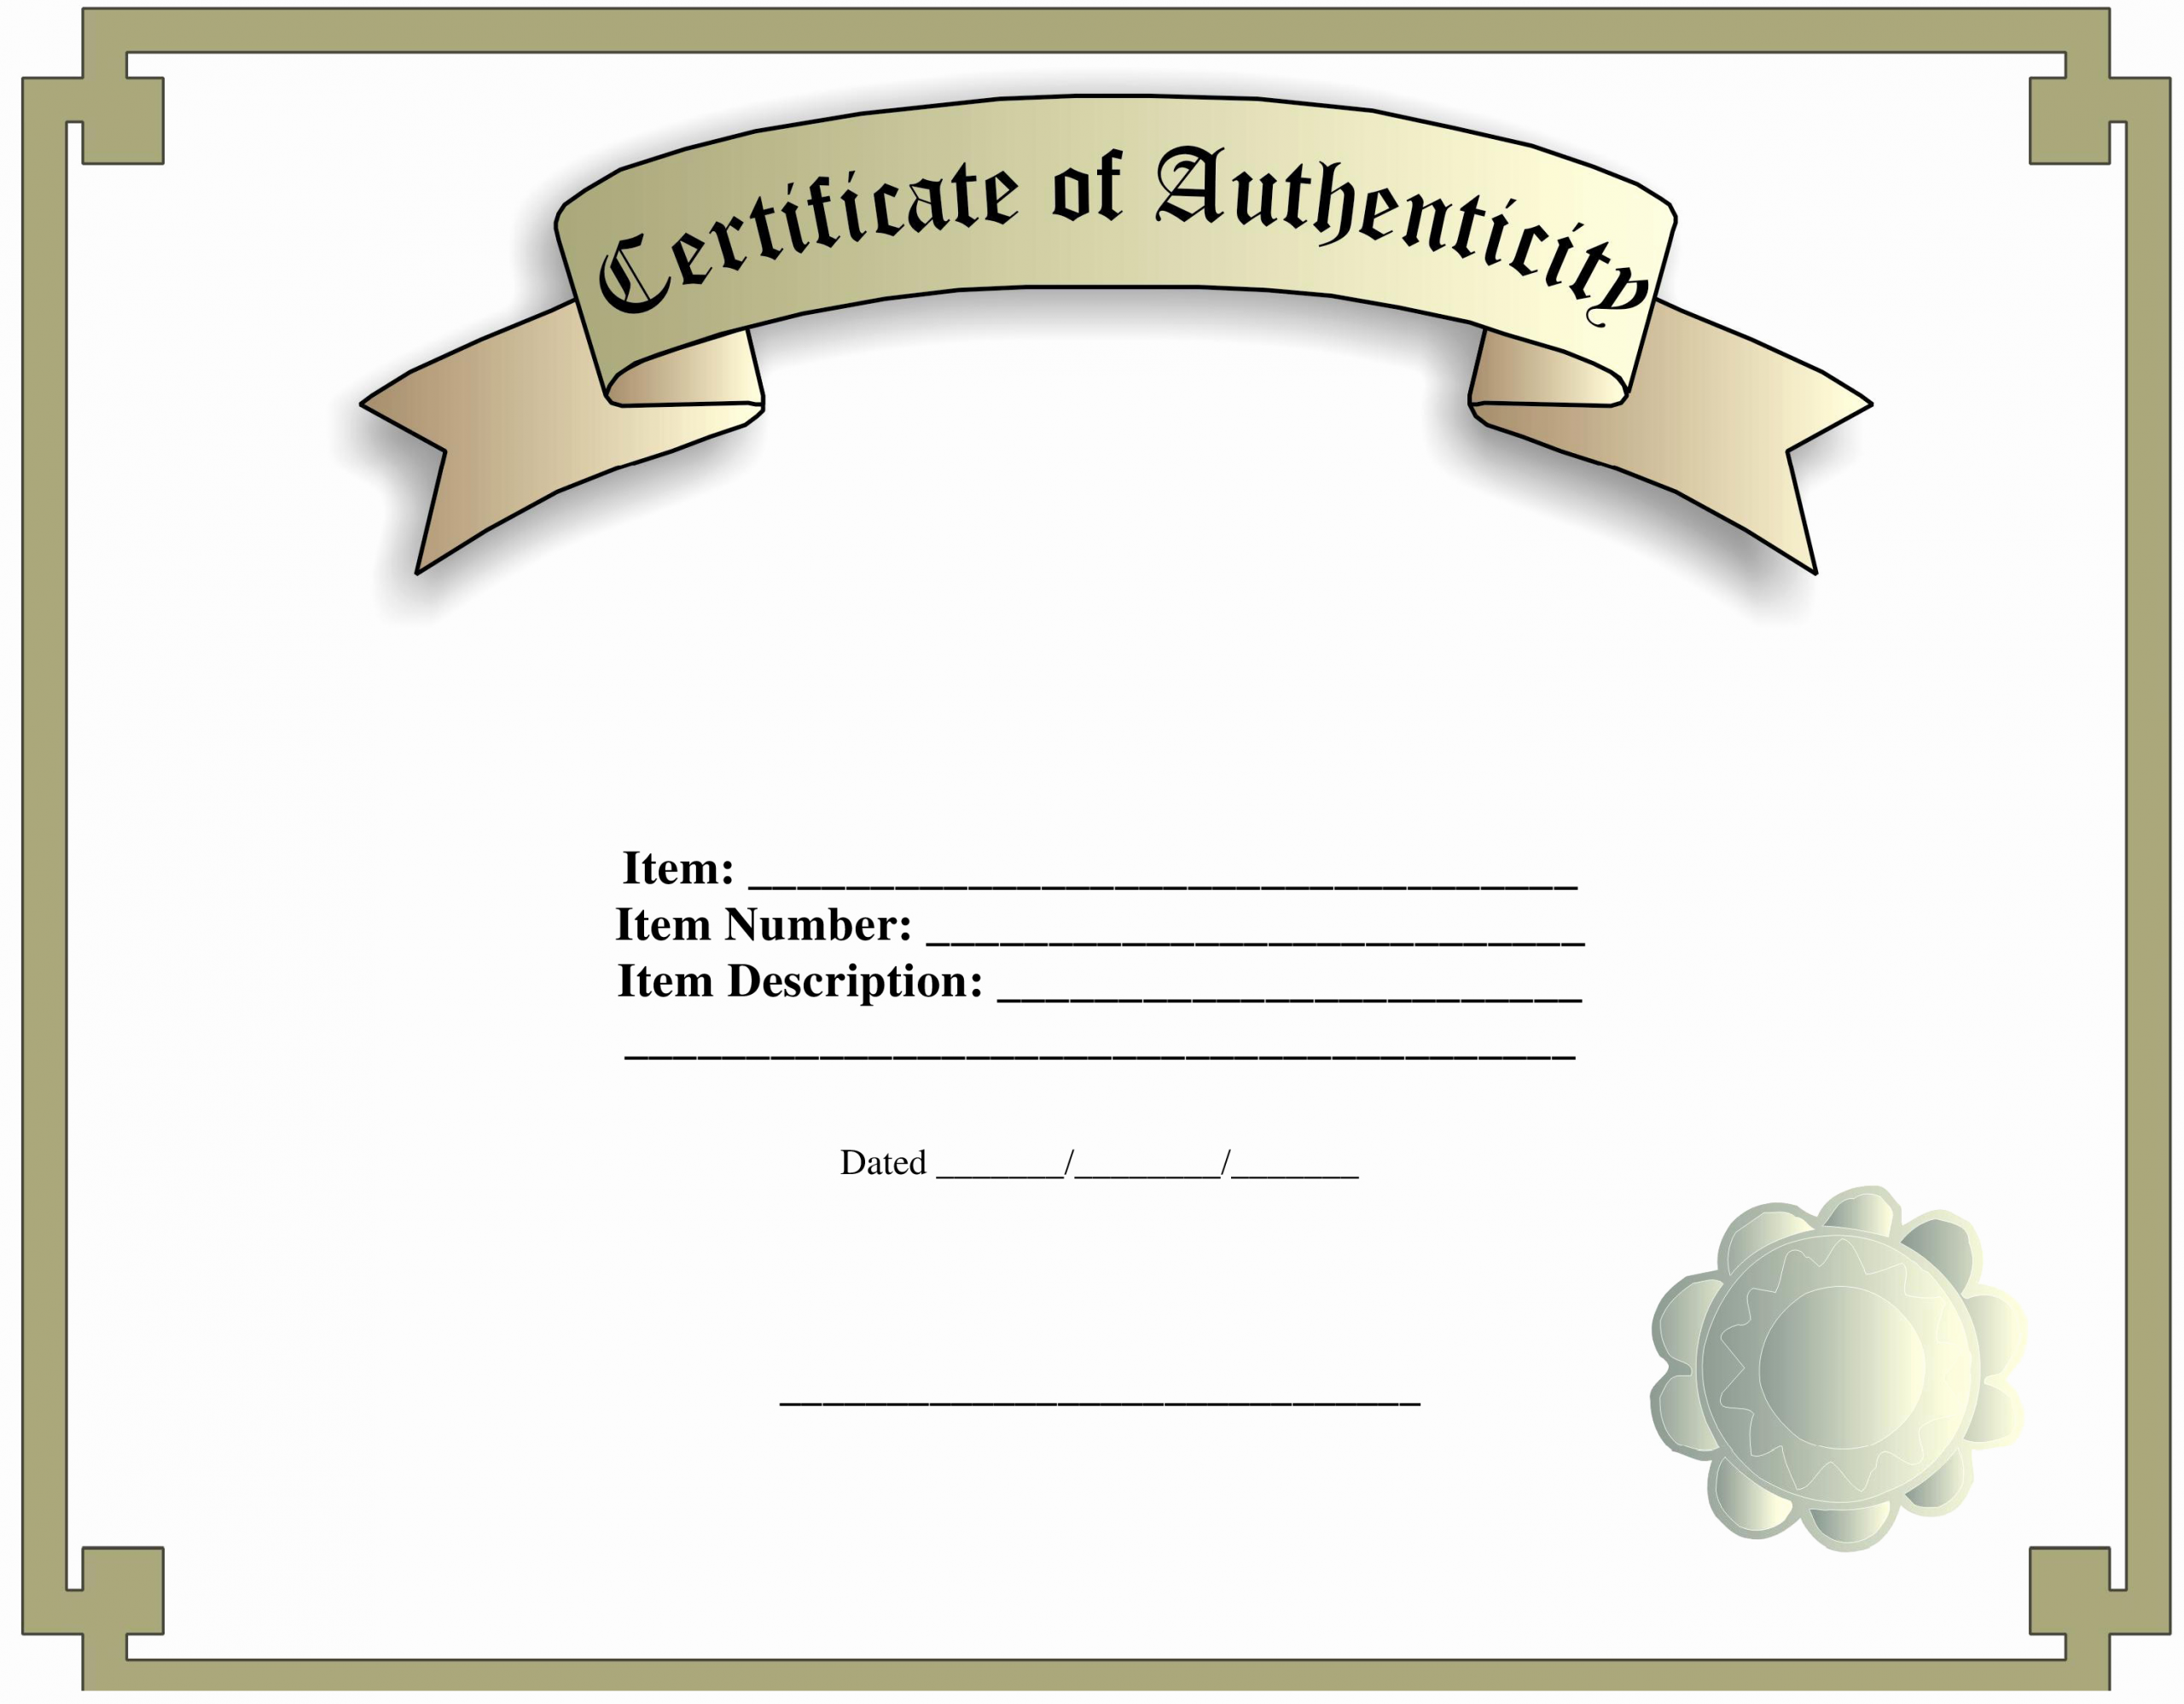 Certificate Of Authenticity Photography Template Unique Certificate Of Authenticity Template